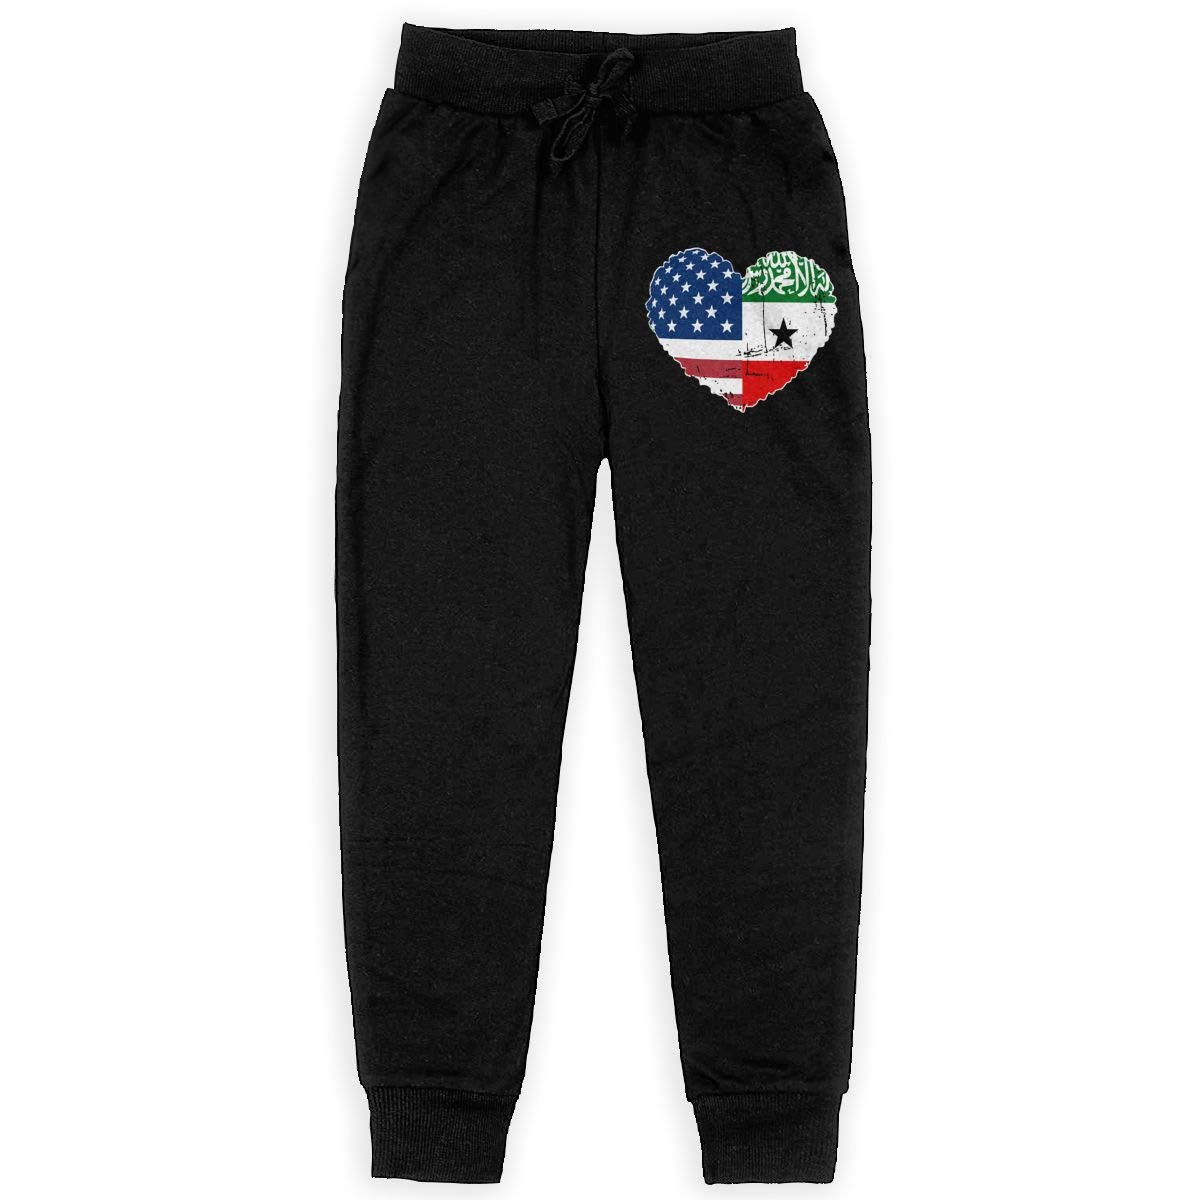 WYZVK22 Somaliland USA Flag Heart Soft//Cozy Sweatpants Youth Sweat Pant for Teenager Girls